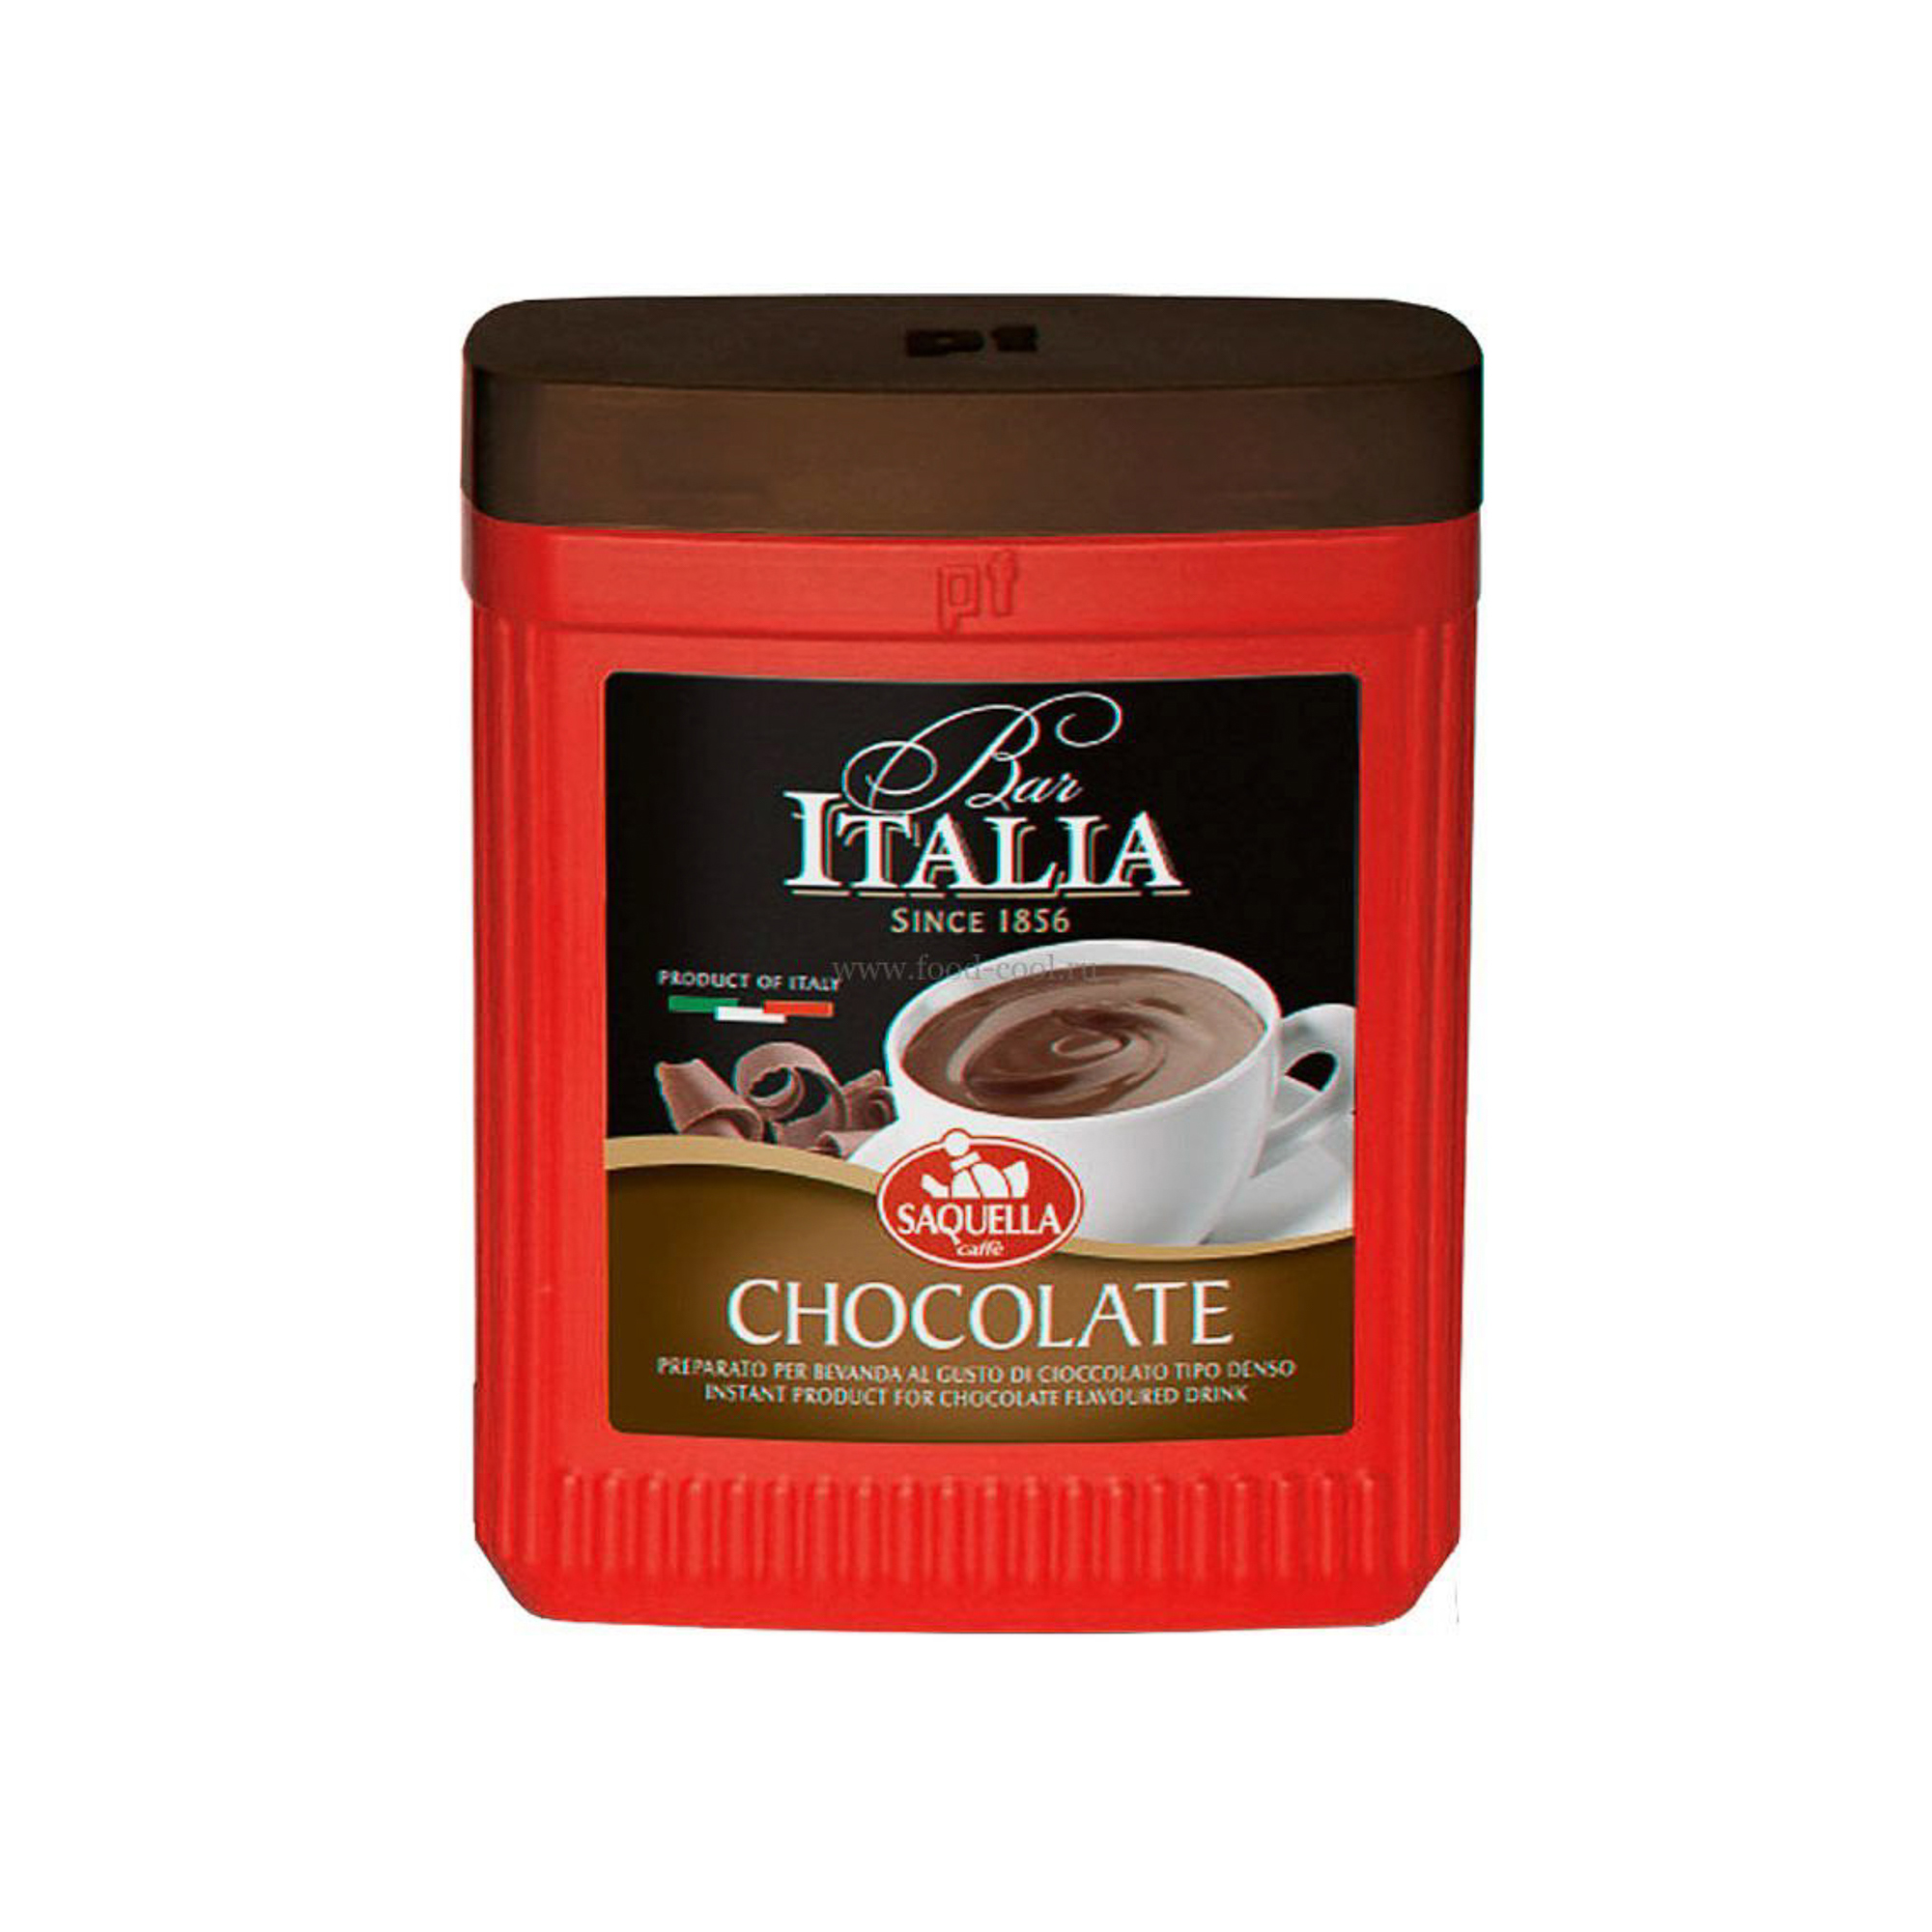 Горячий шоколад Saquella Bar Italia Chocolate 400 г